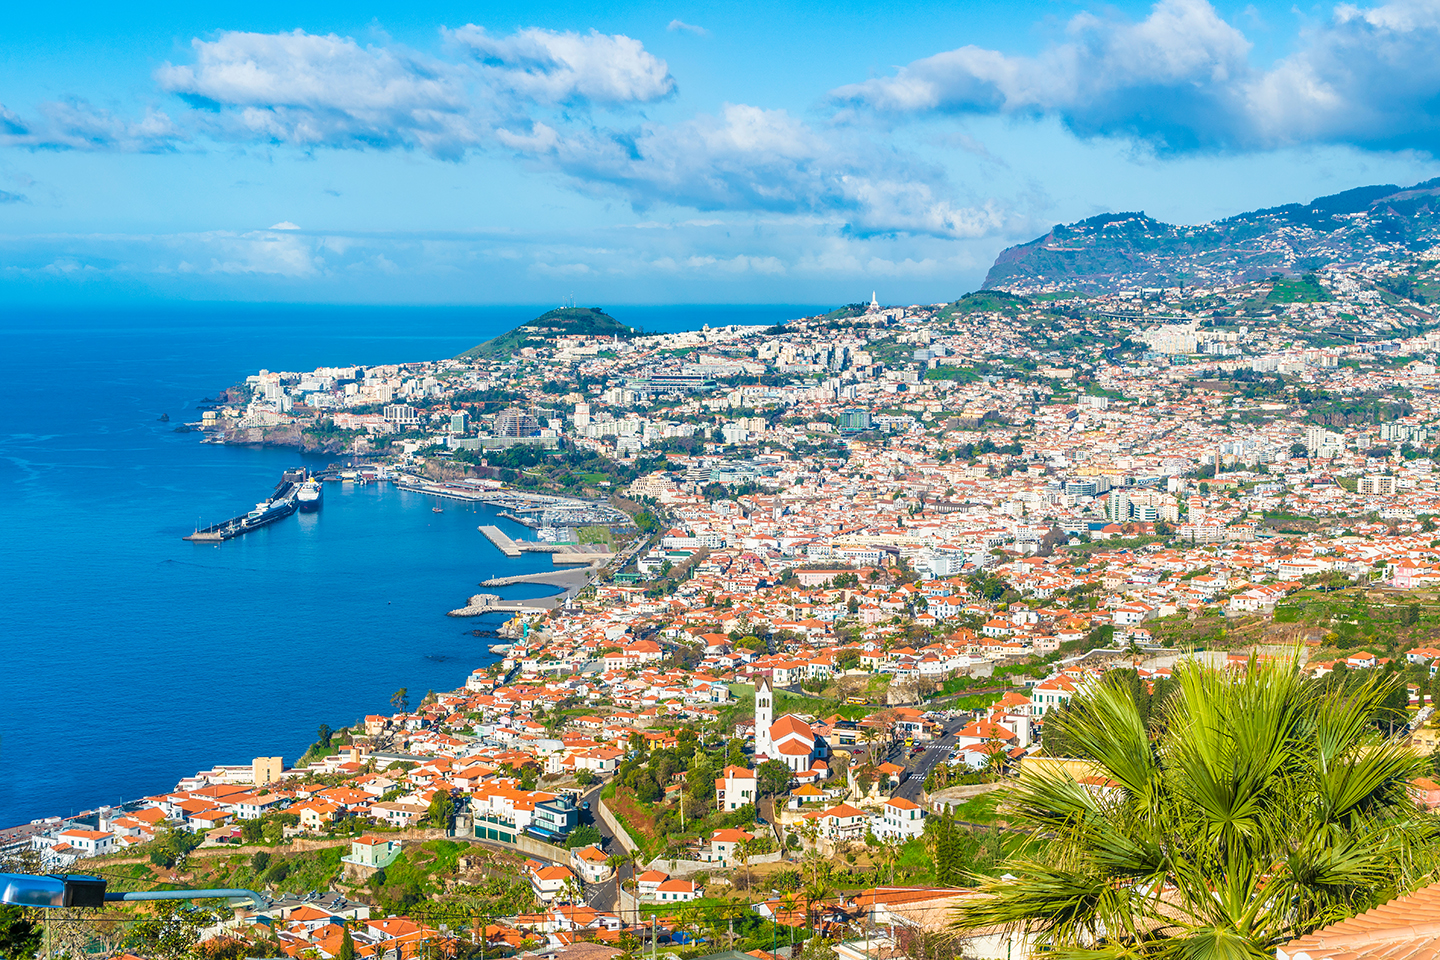 A view over Funchal, Madeira, with sea on the left.